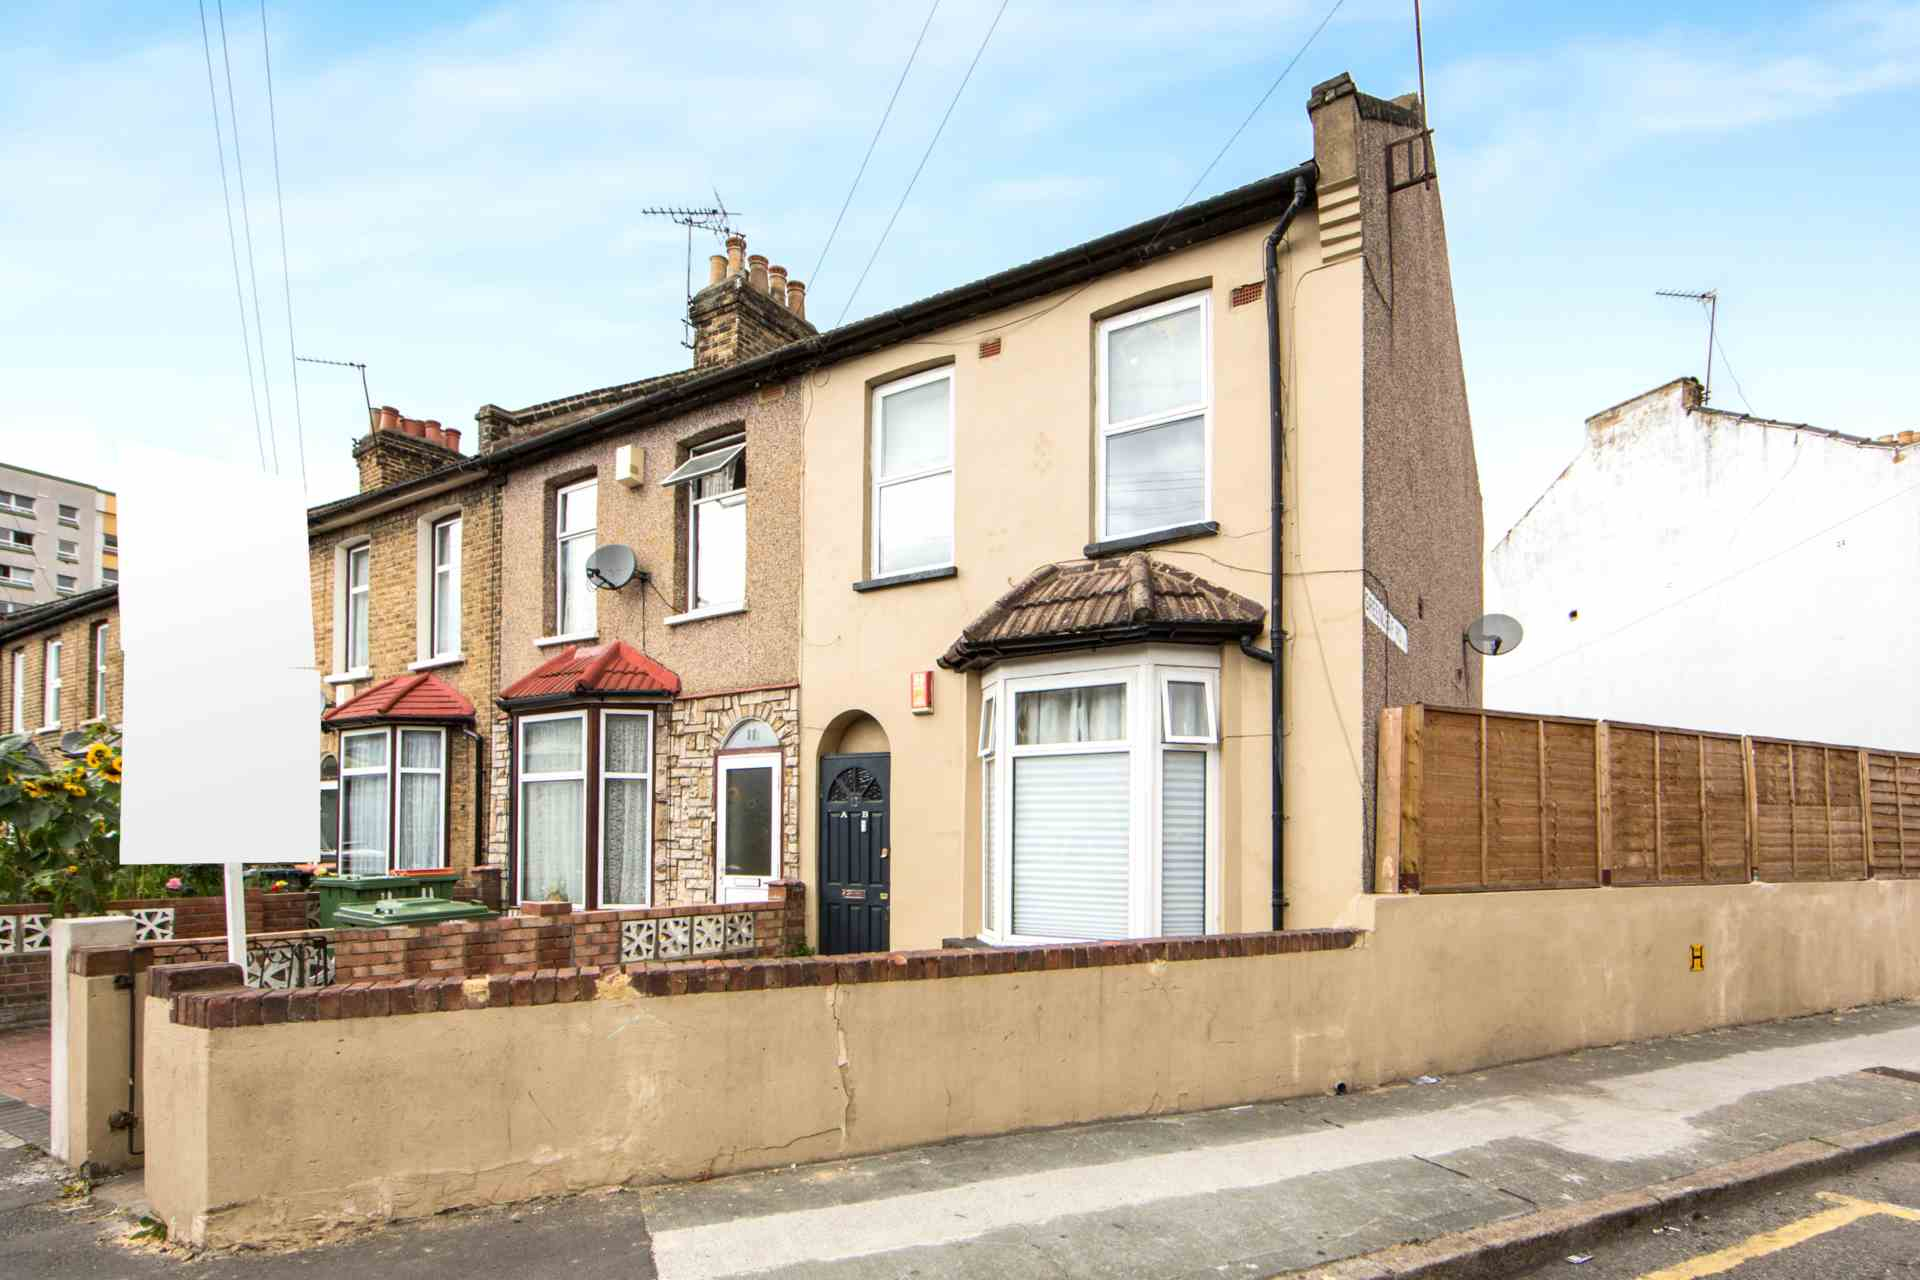 Redclyffe Road, Upton Park, Image 14